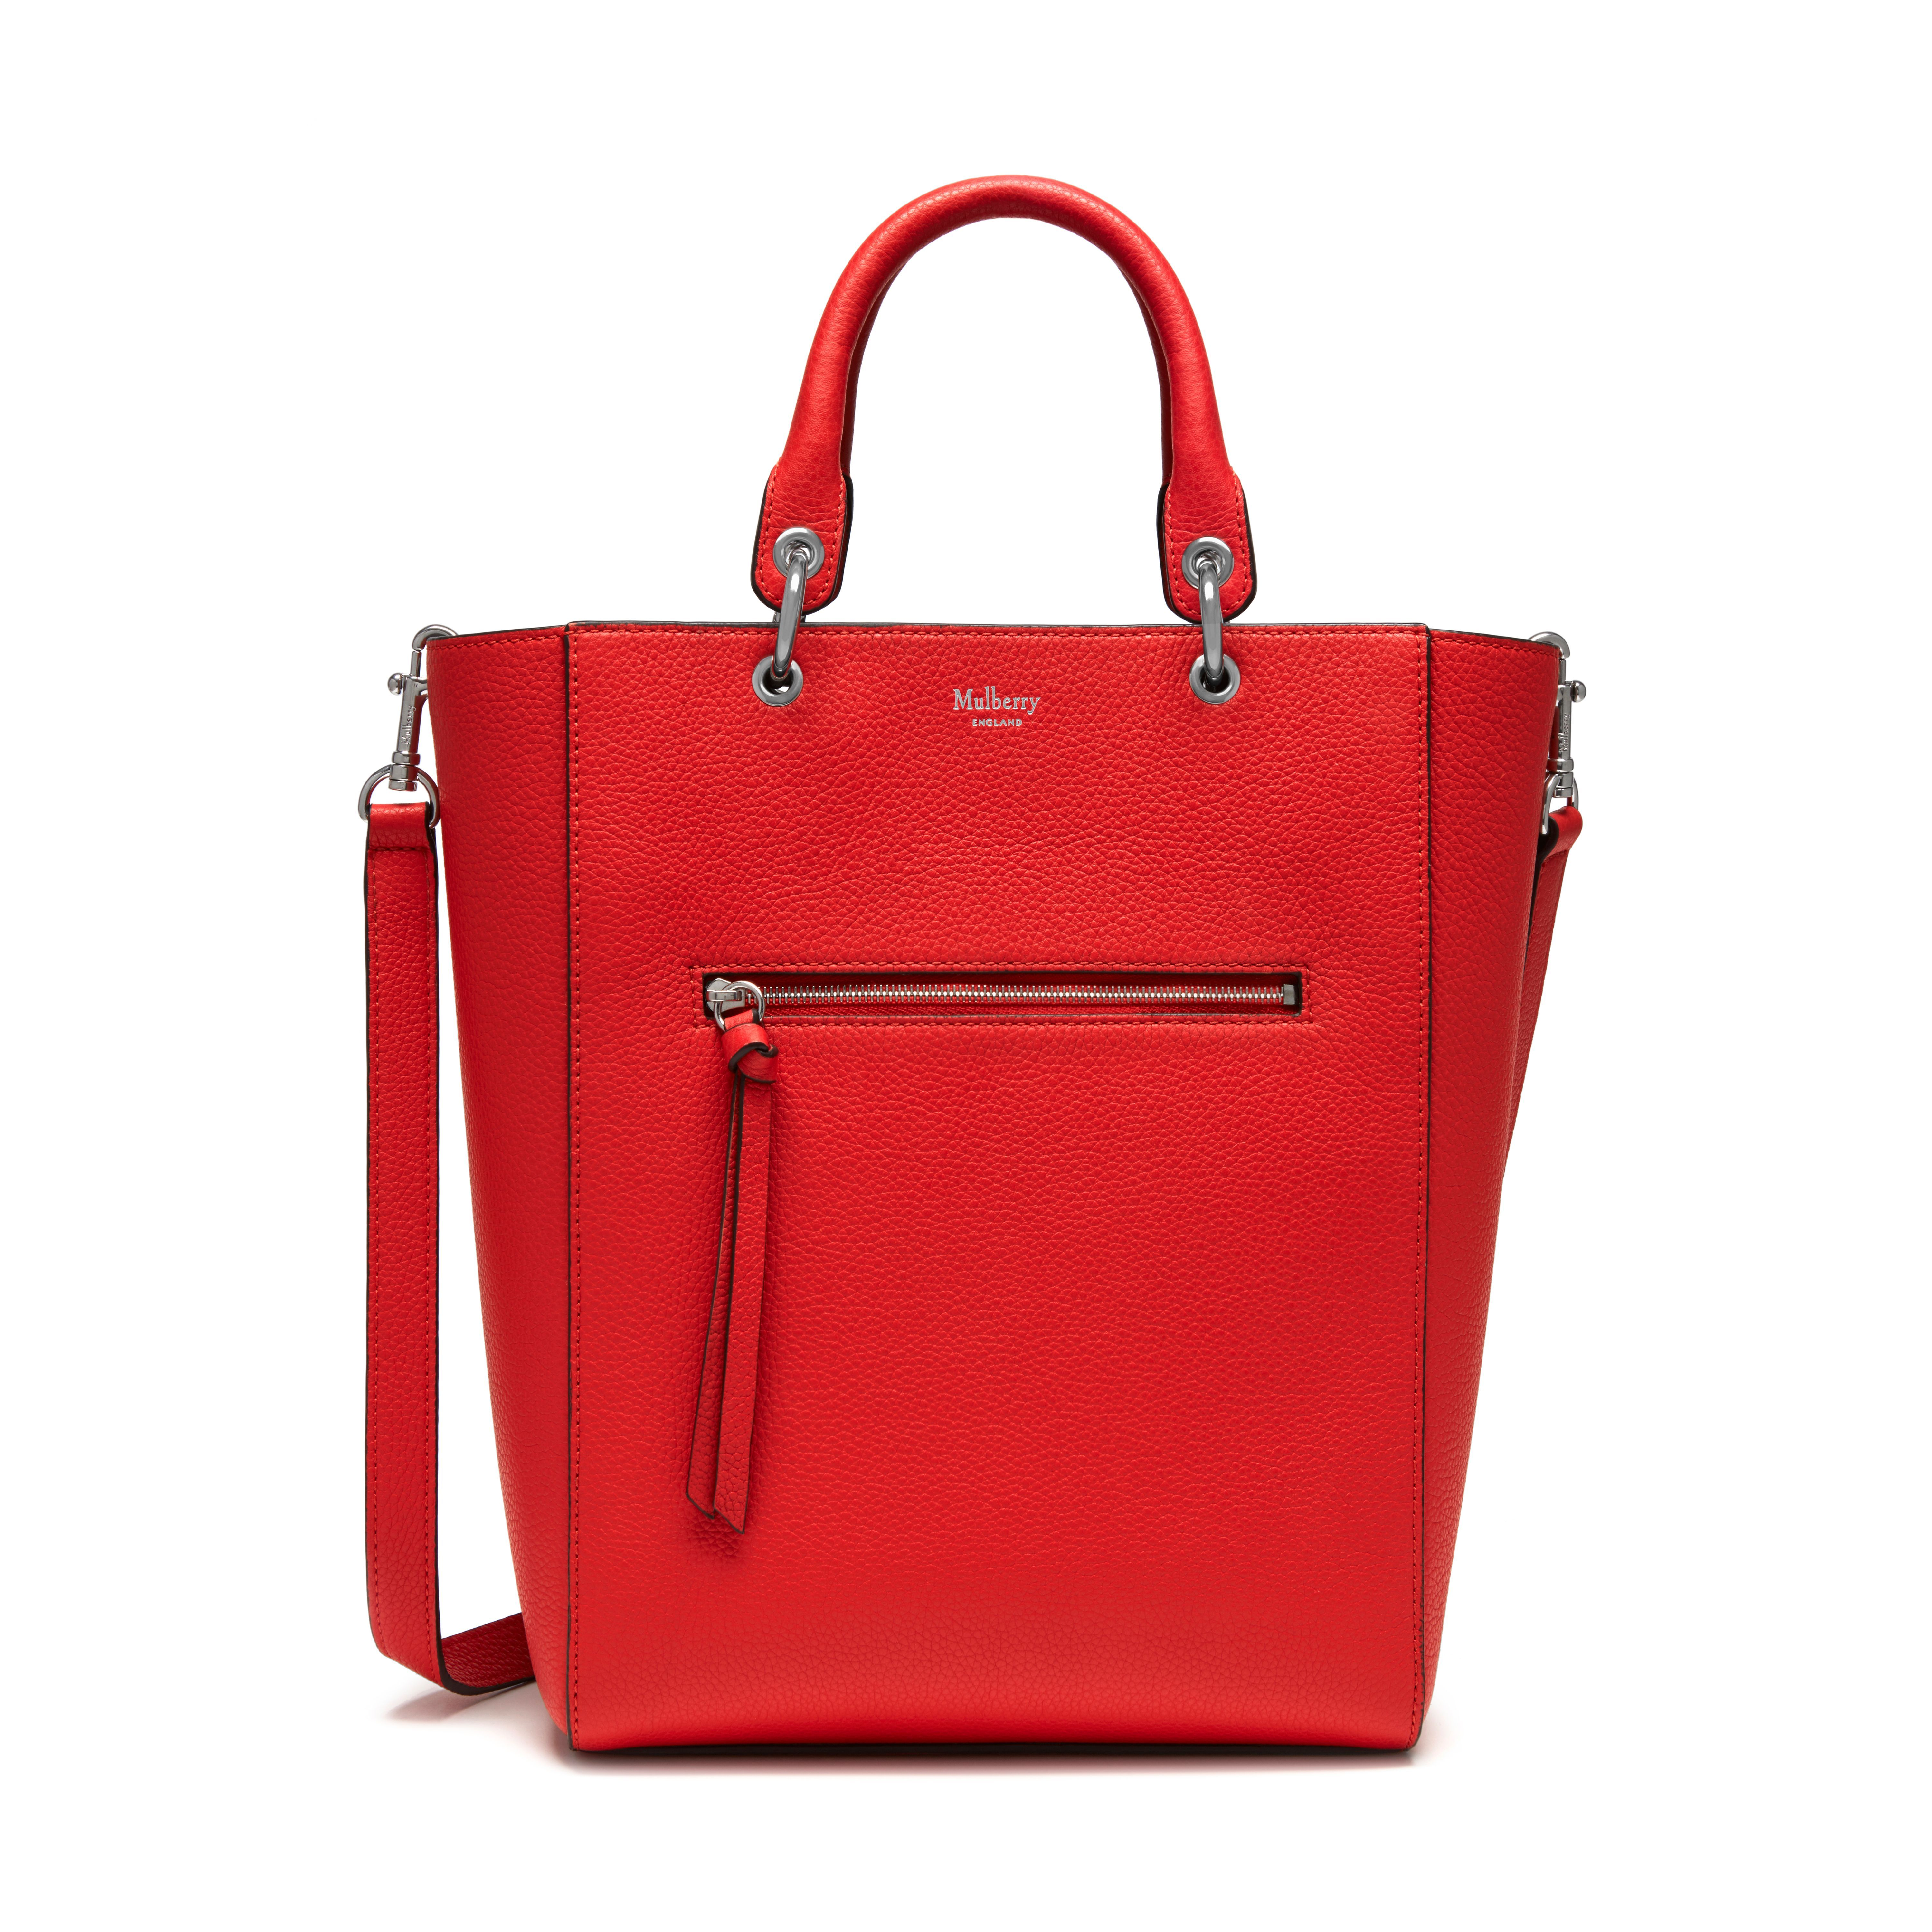 587313fb3651 Shop the Small Maple in Fiery Red Small Classic Grain Leather at Mulberry.com.  A compact tote with a cool and playful feel